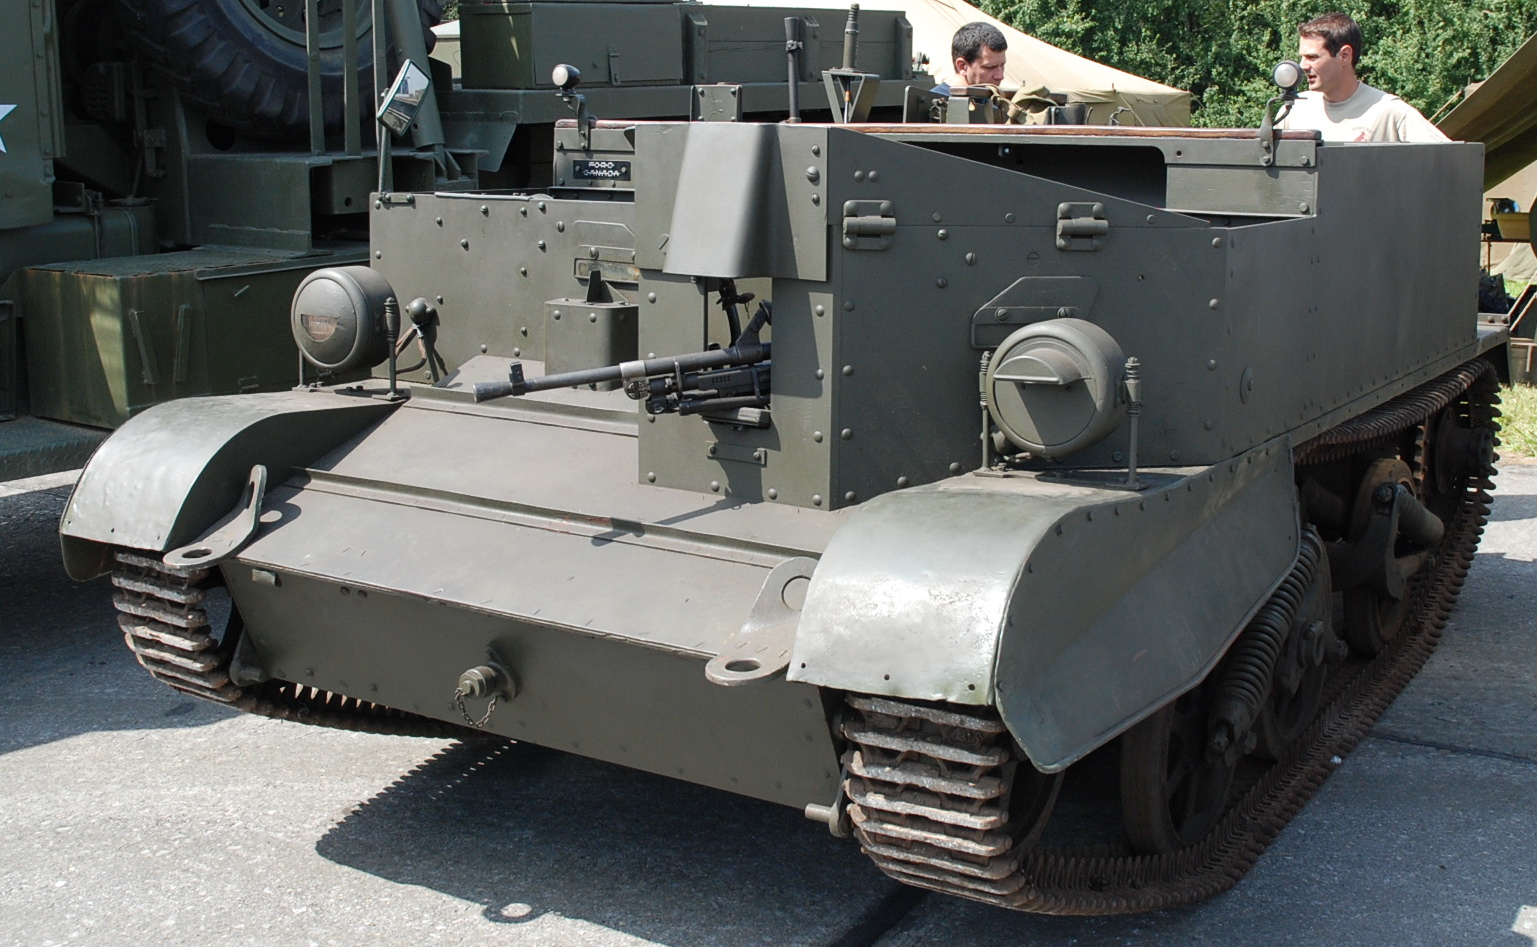 A Bren Mk.II mortar carrier at Bovington, where most of the Brens in the world are displayed